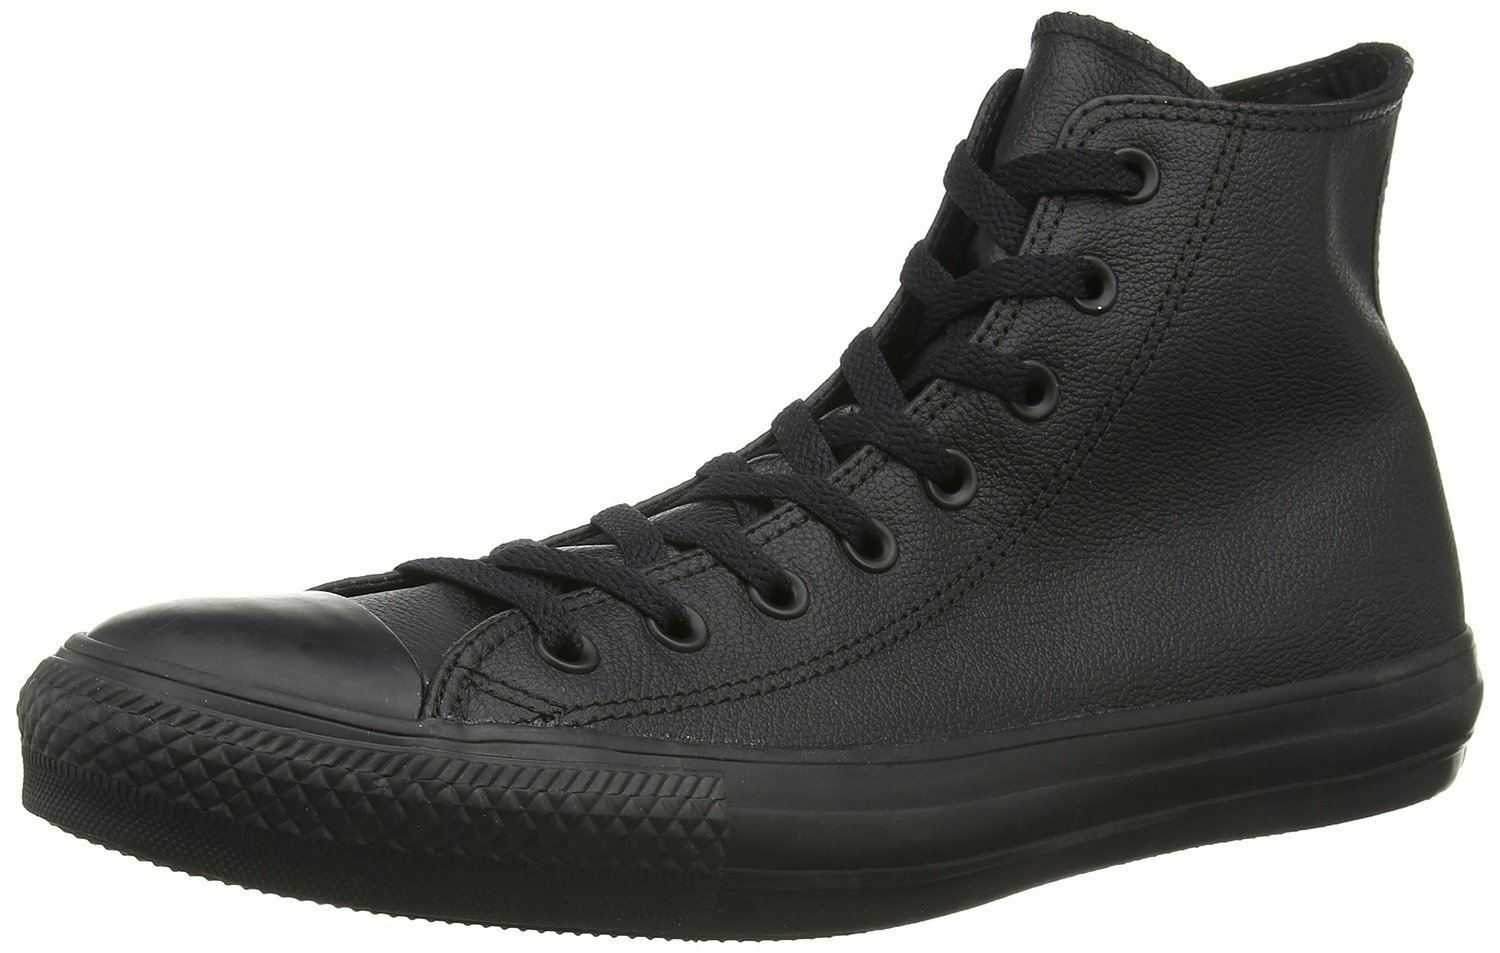 Converse Chuck Taylor All Star Black Hi Unisex Leather Trainers Boots